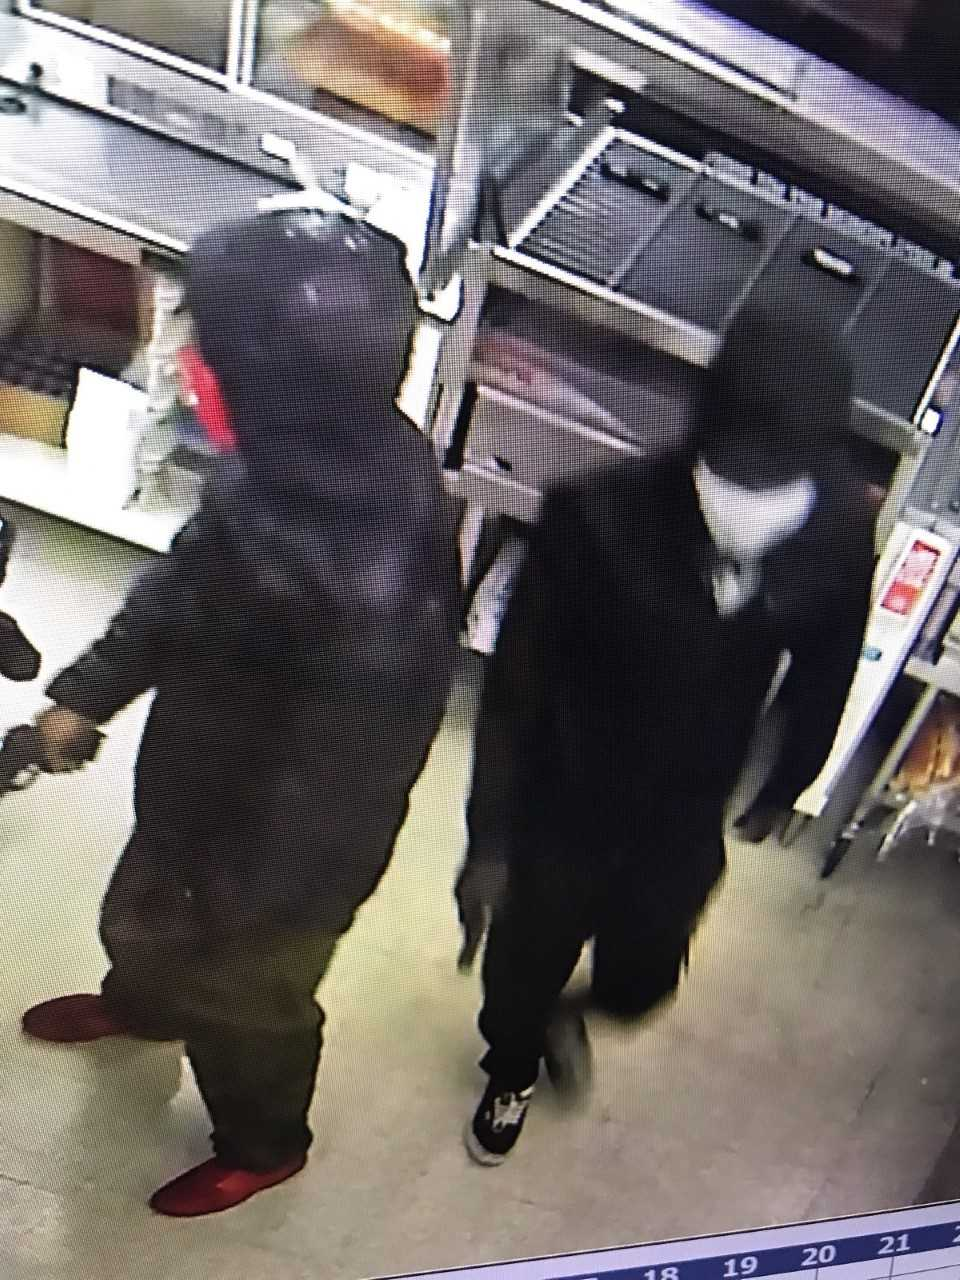 armed robbery suspects 7-11